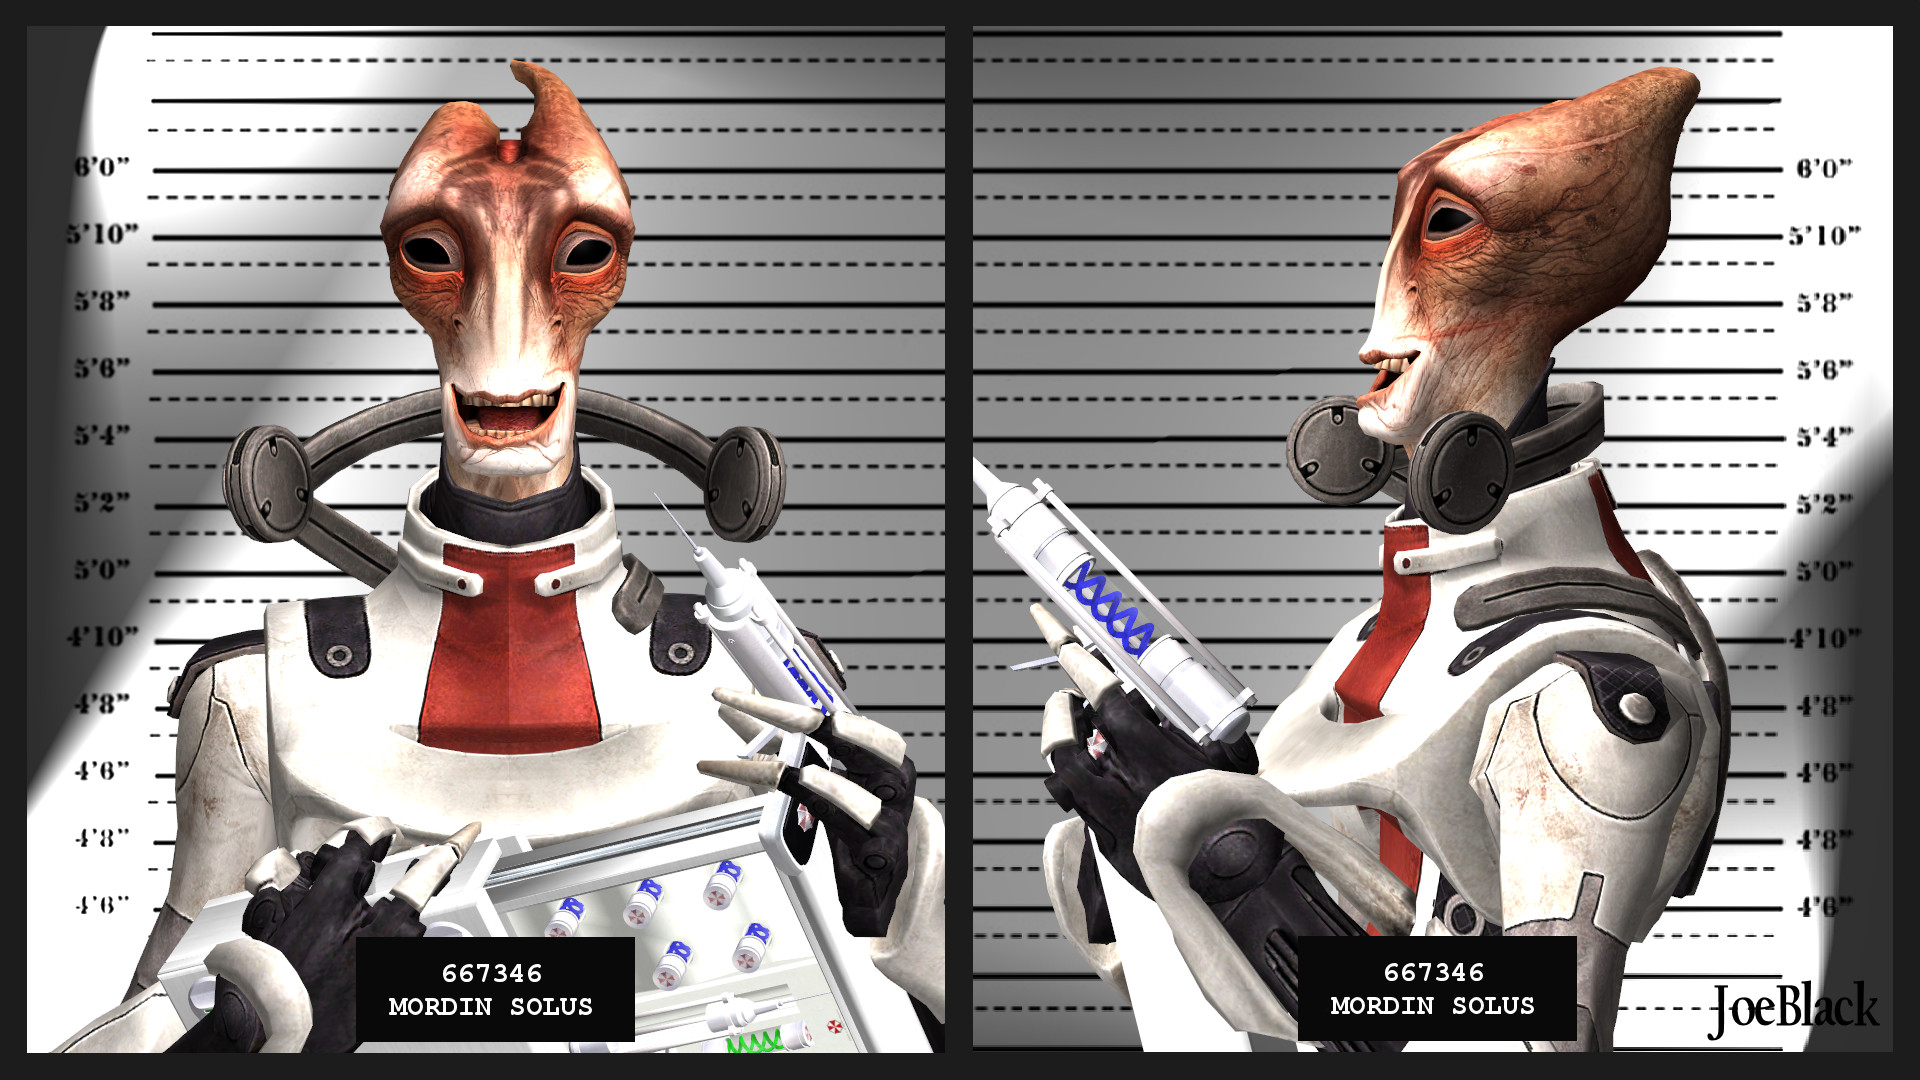 Mugshot - Mordin by The-JoeBlack